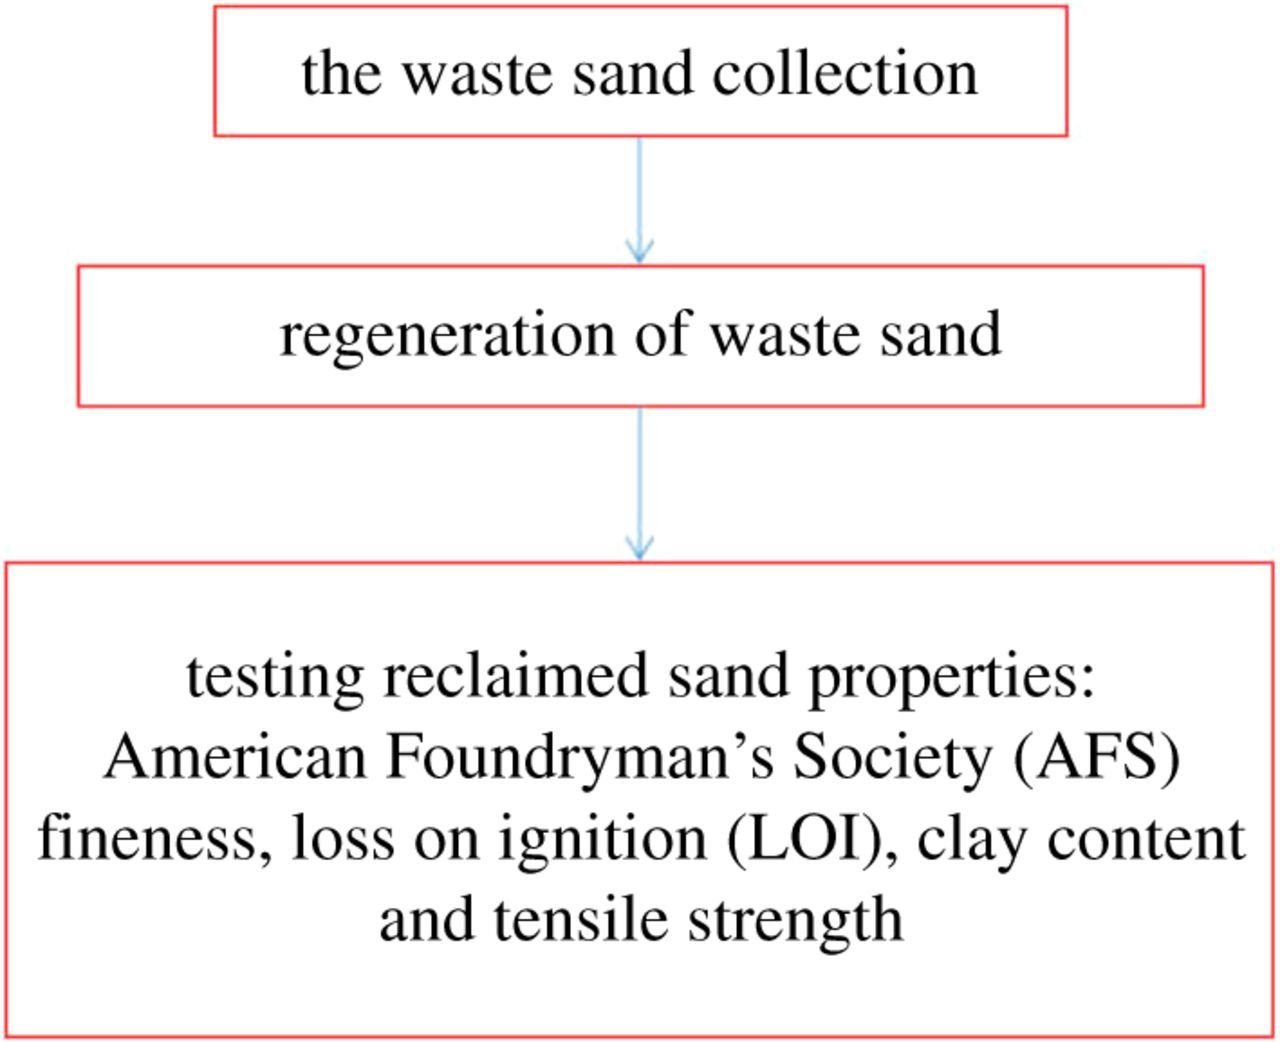 Research on regeneration methods of animal glue waste sand